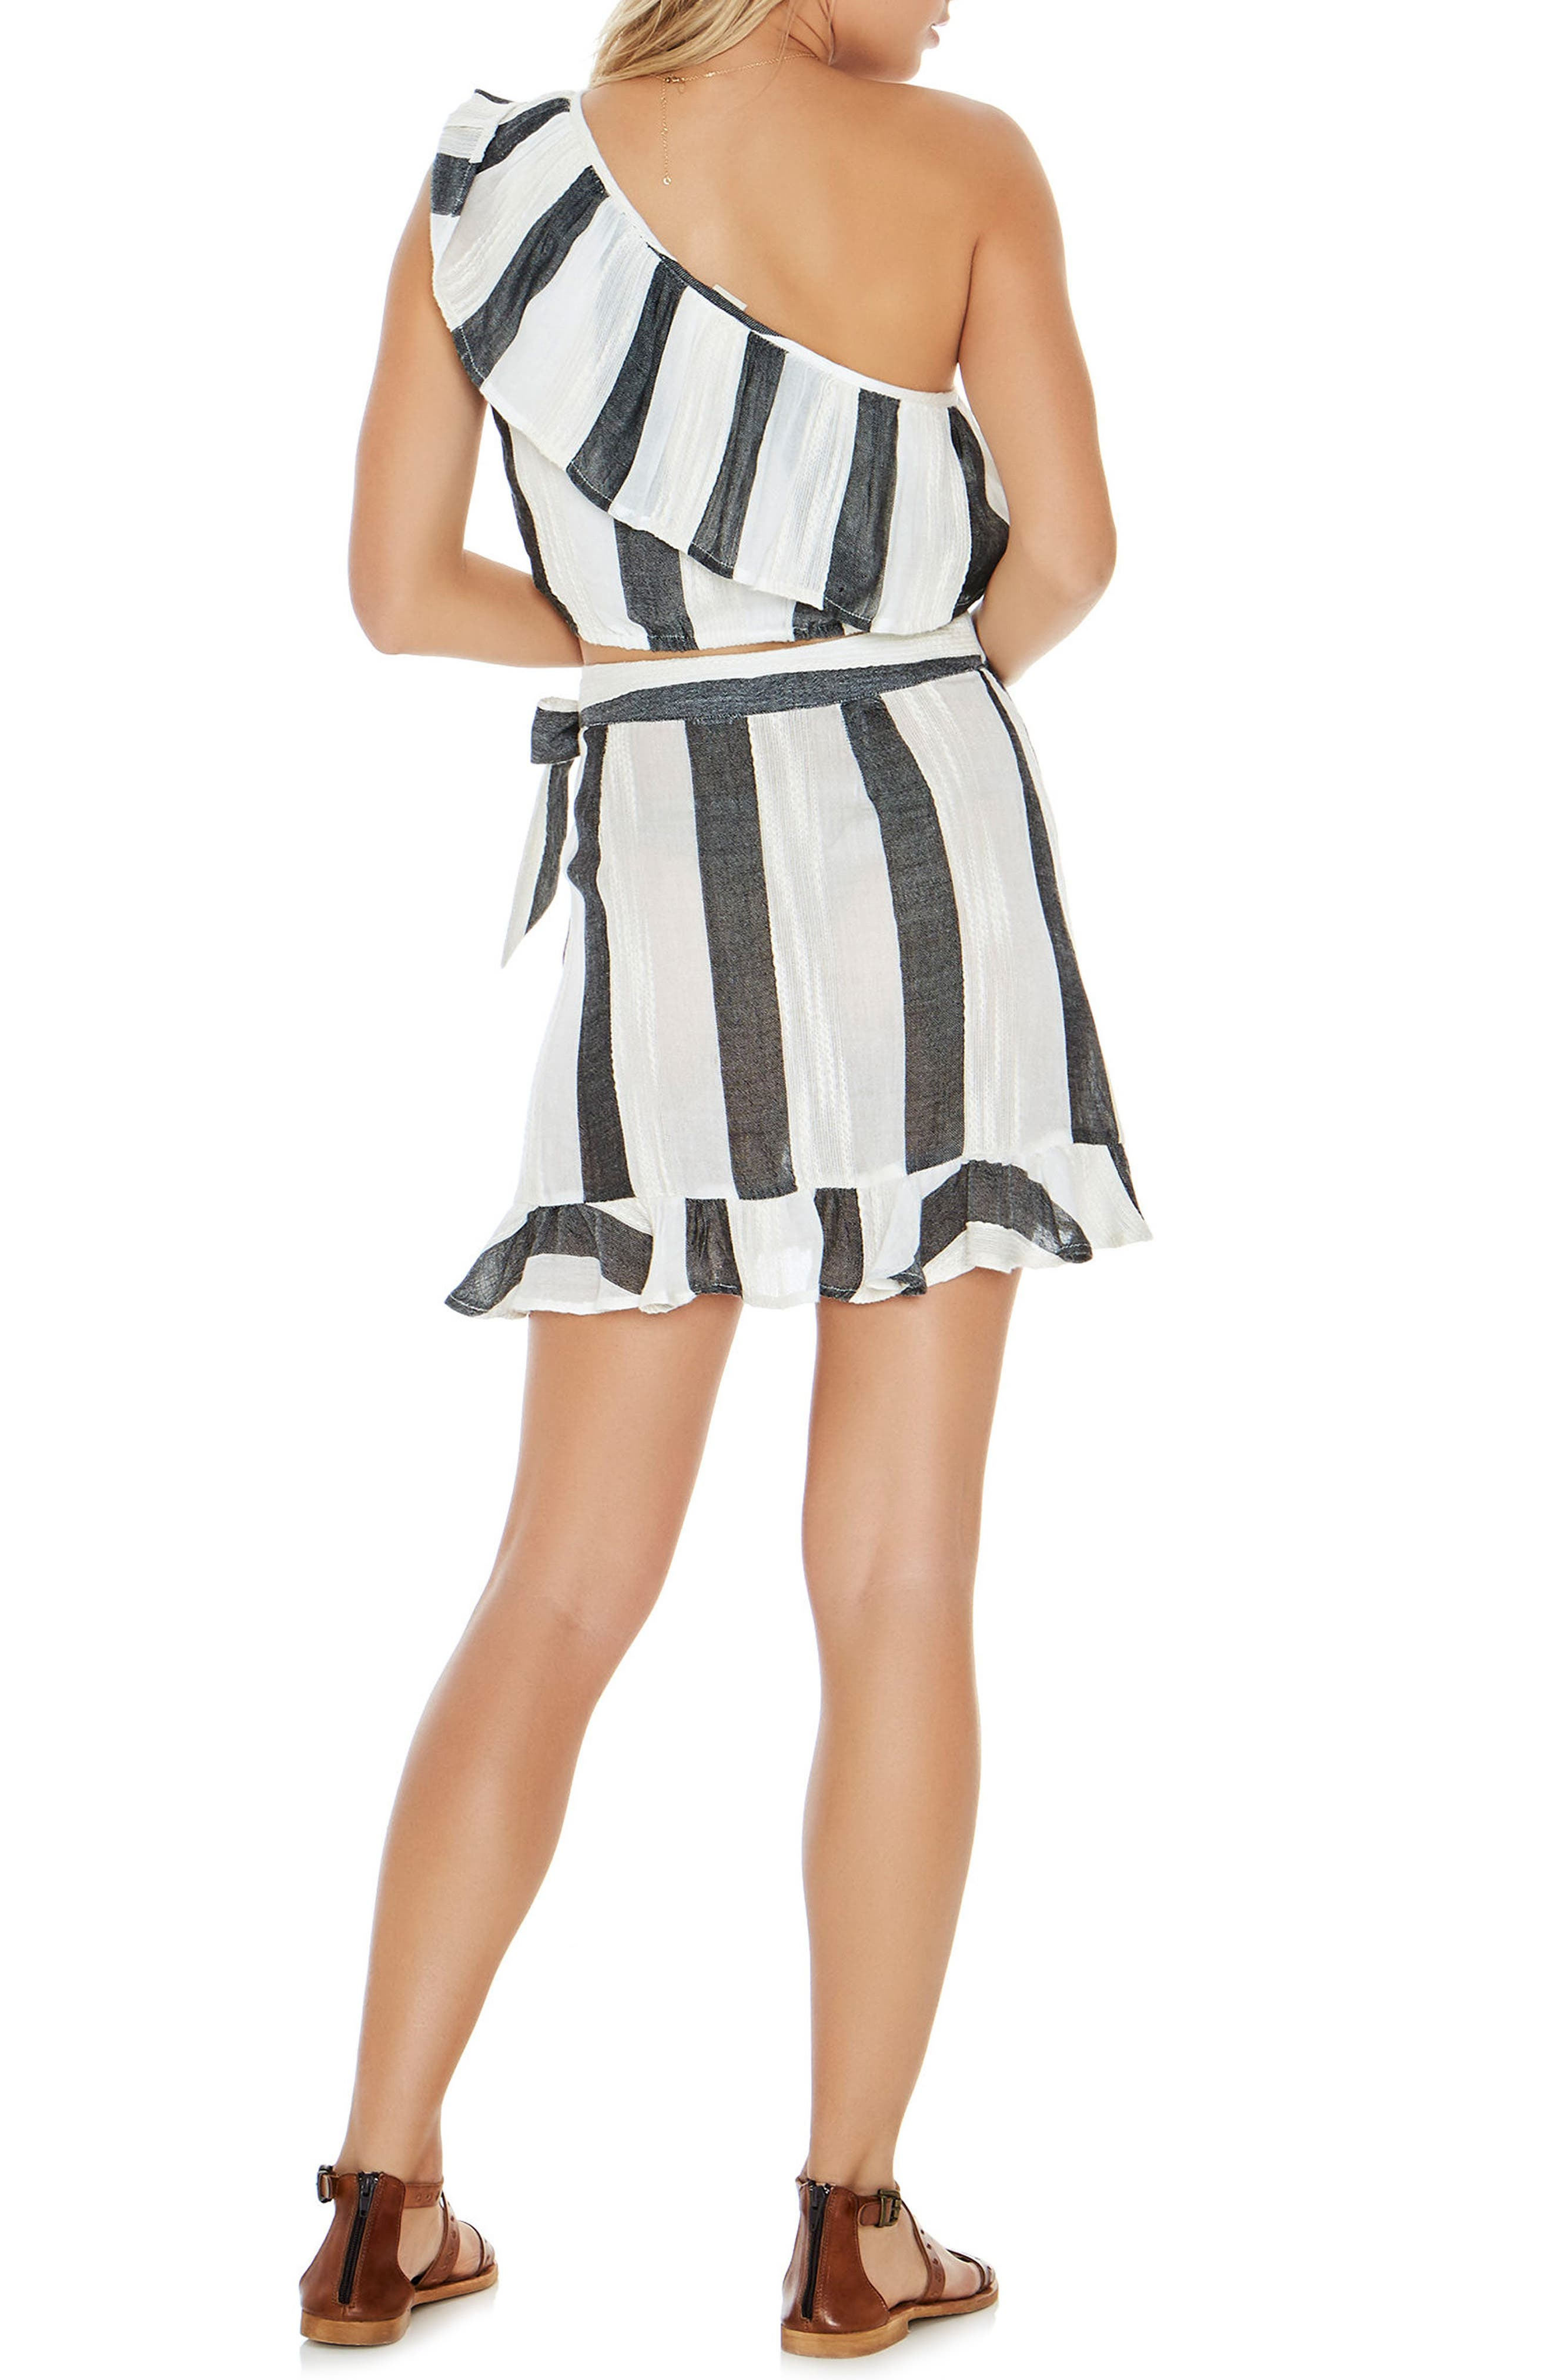 Alicia One-Shoulder Cover-Up Top,                             Alternate thumbnail 5, color,                             Beach Bum Stripe